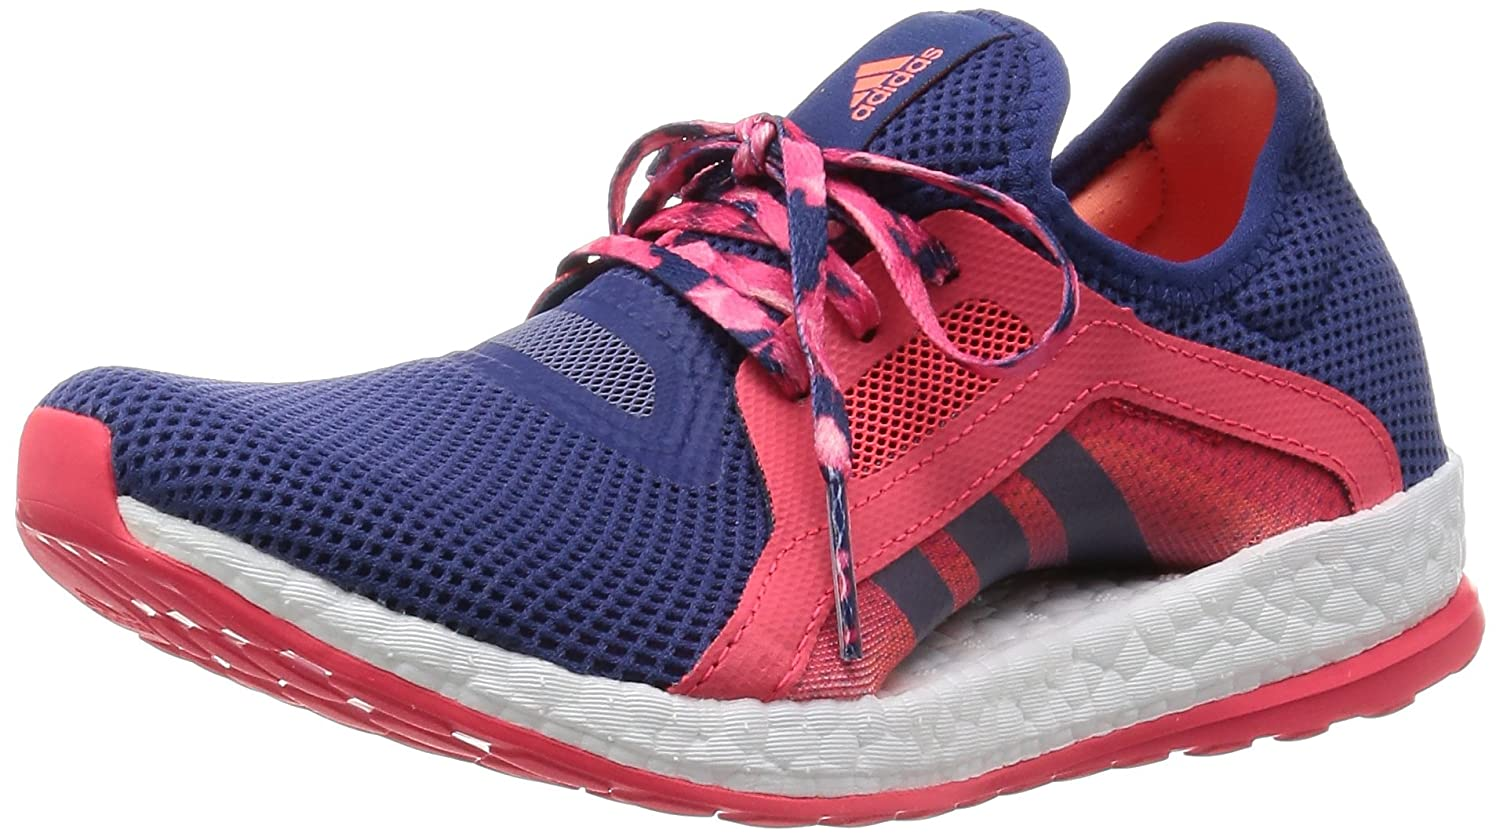 Boost Running X Adidas Pure Women's Shoes wZOkXiuPT